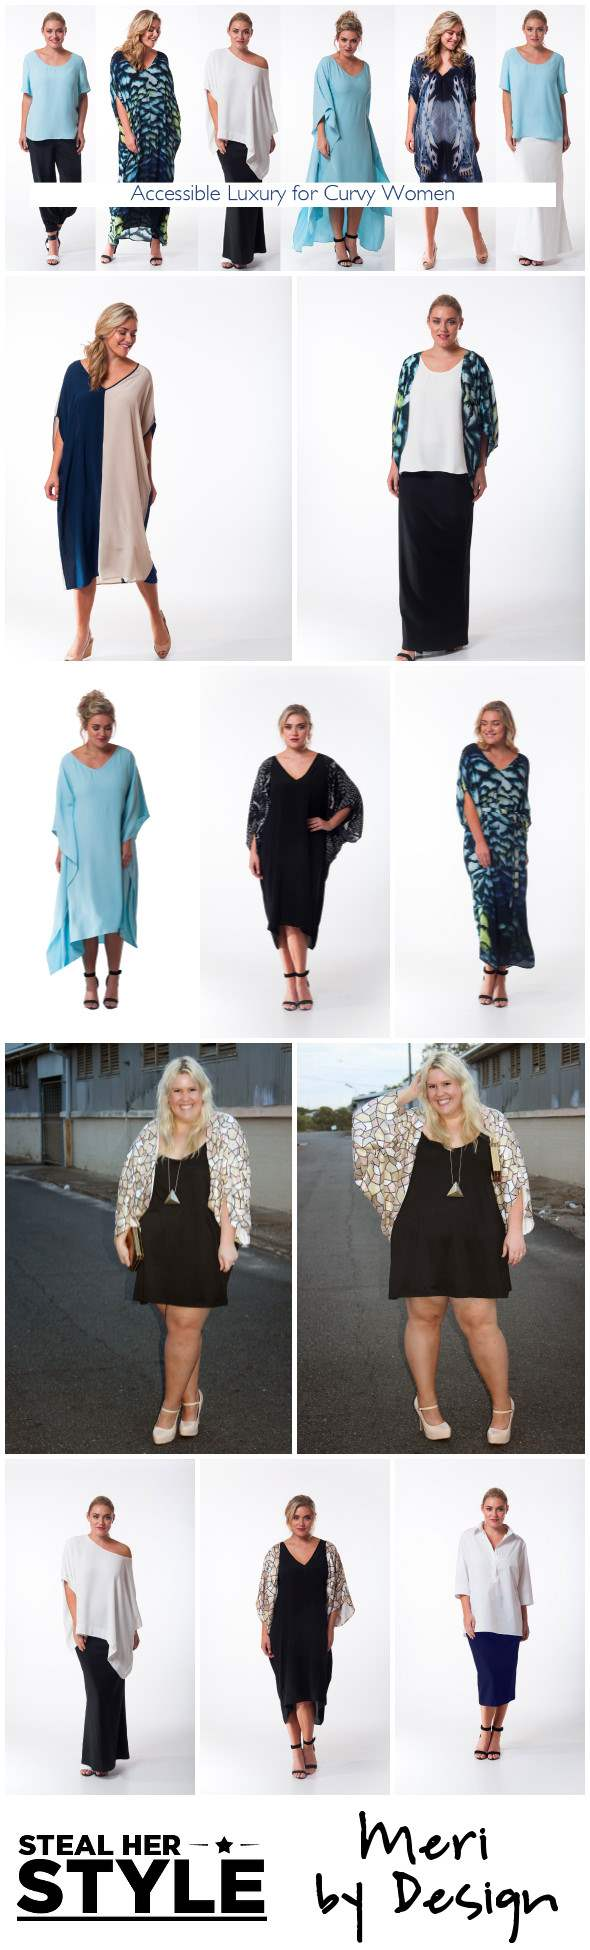 Meri by Design: stylish plus size fashion for curvy and elegant women